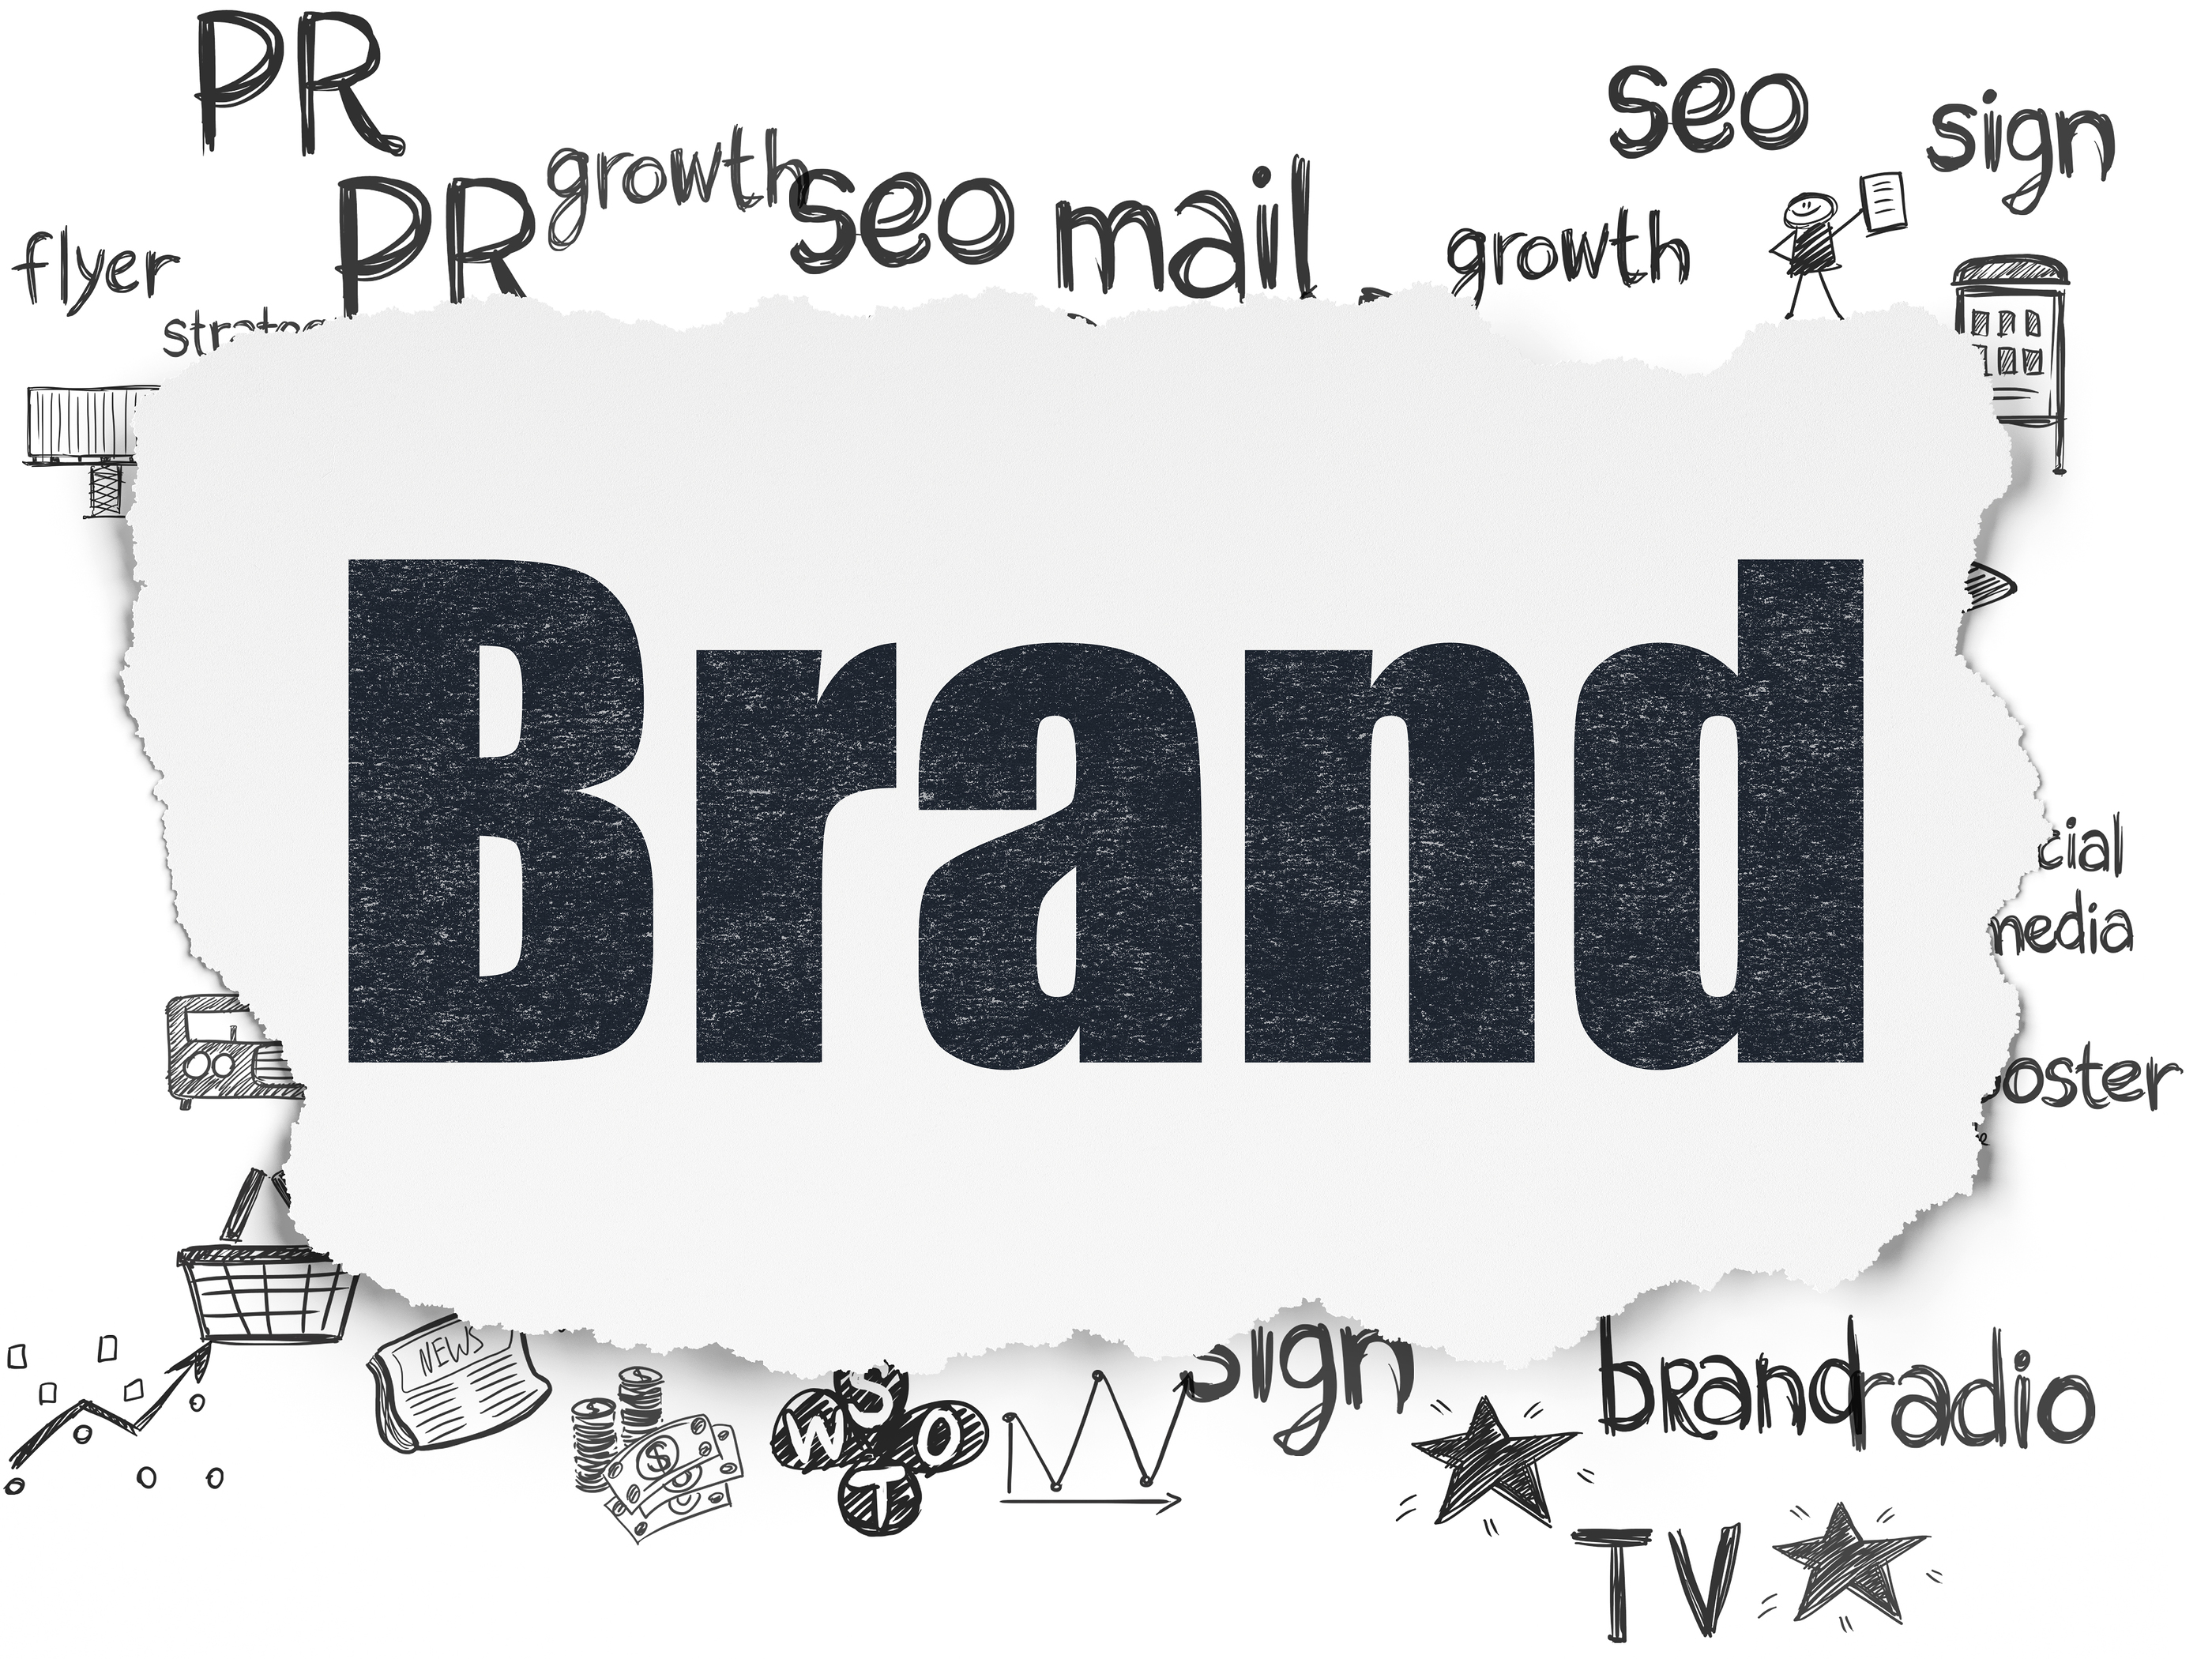 Branding tips for your accountancy firm